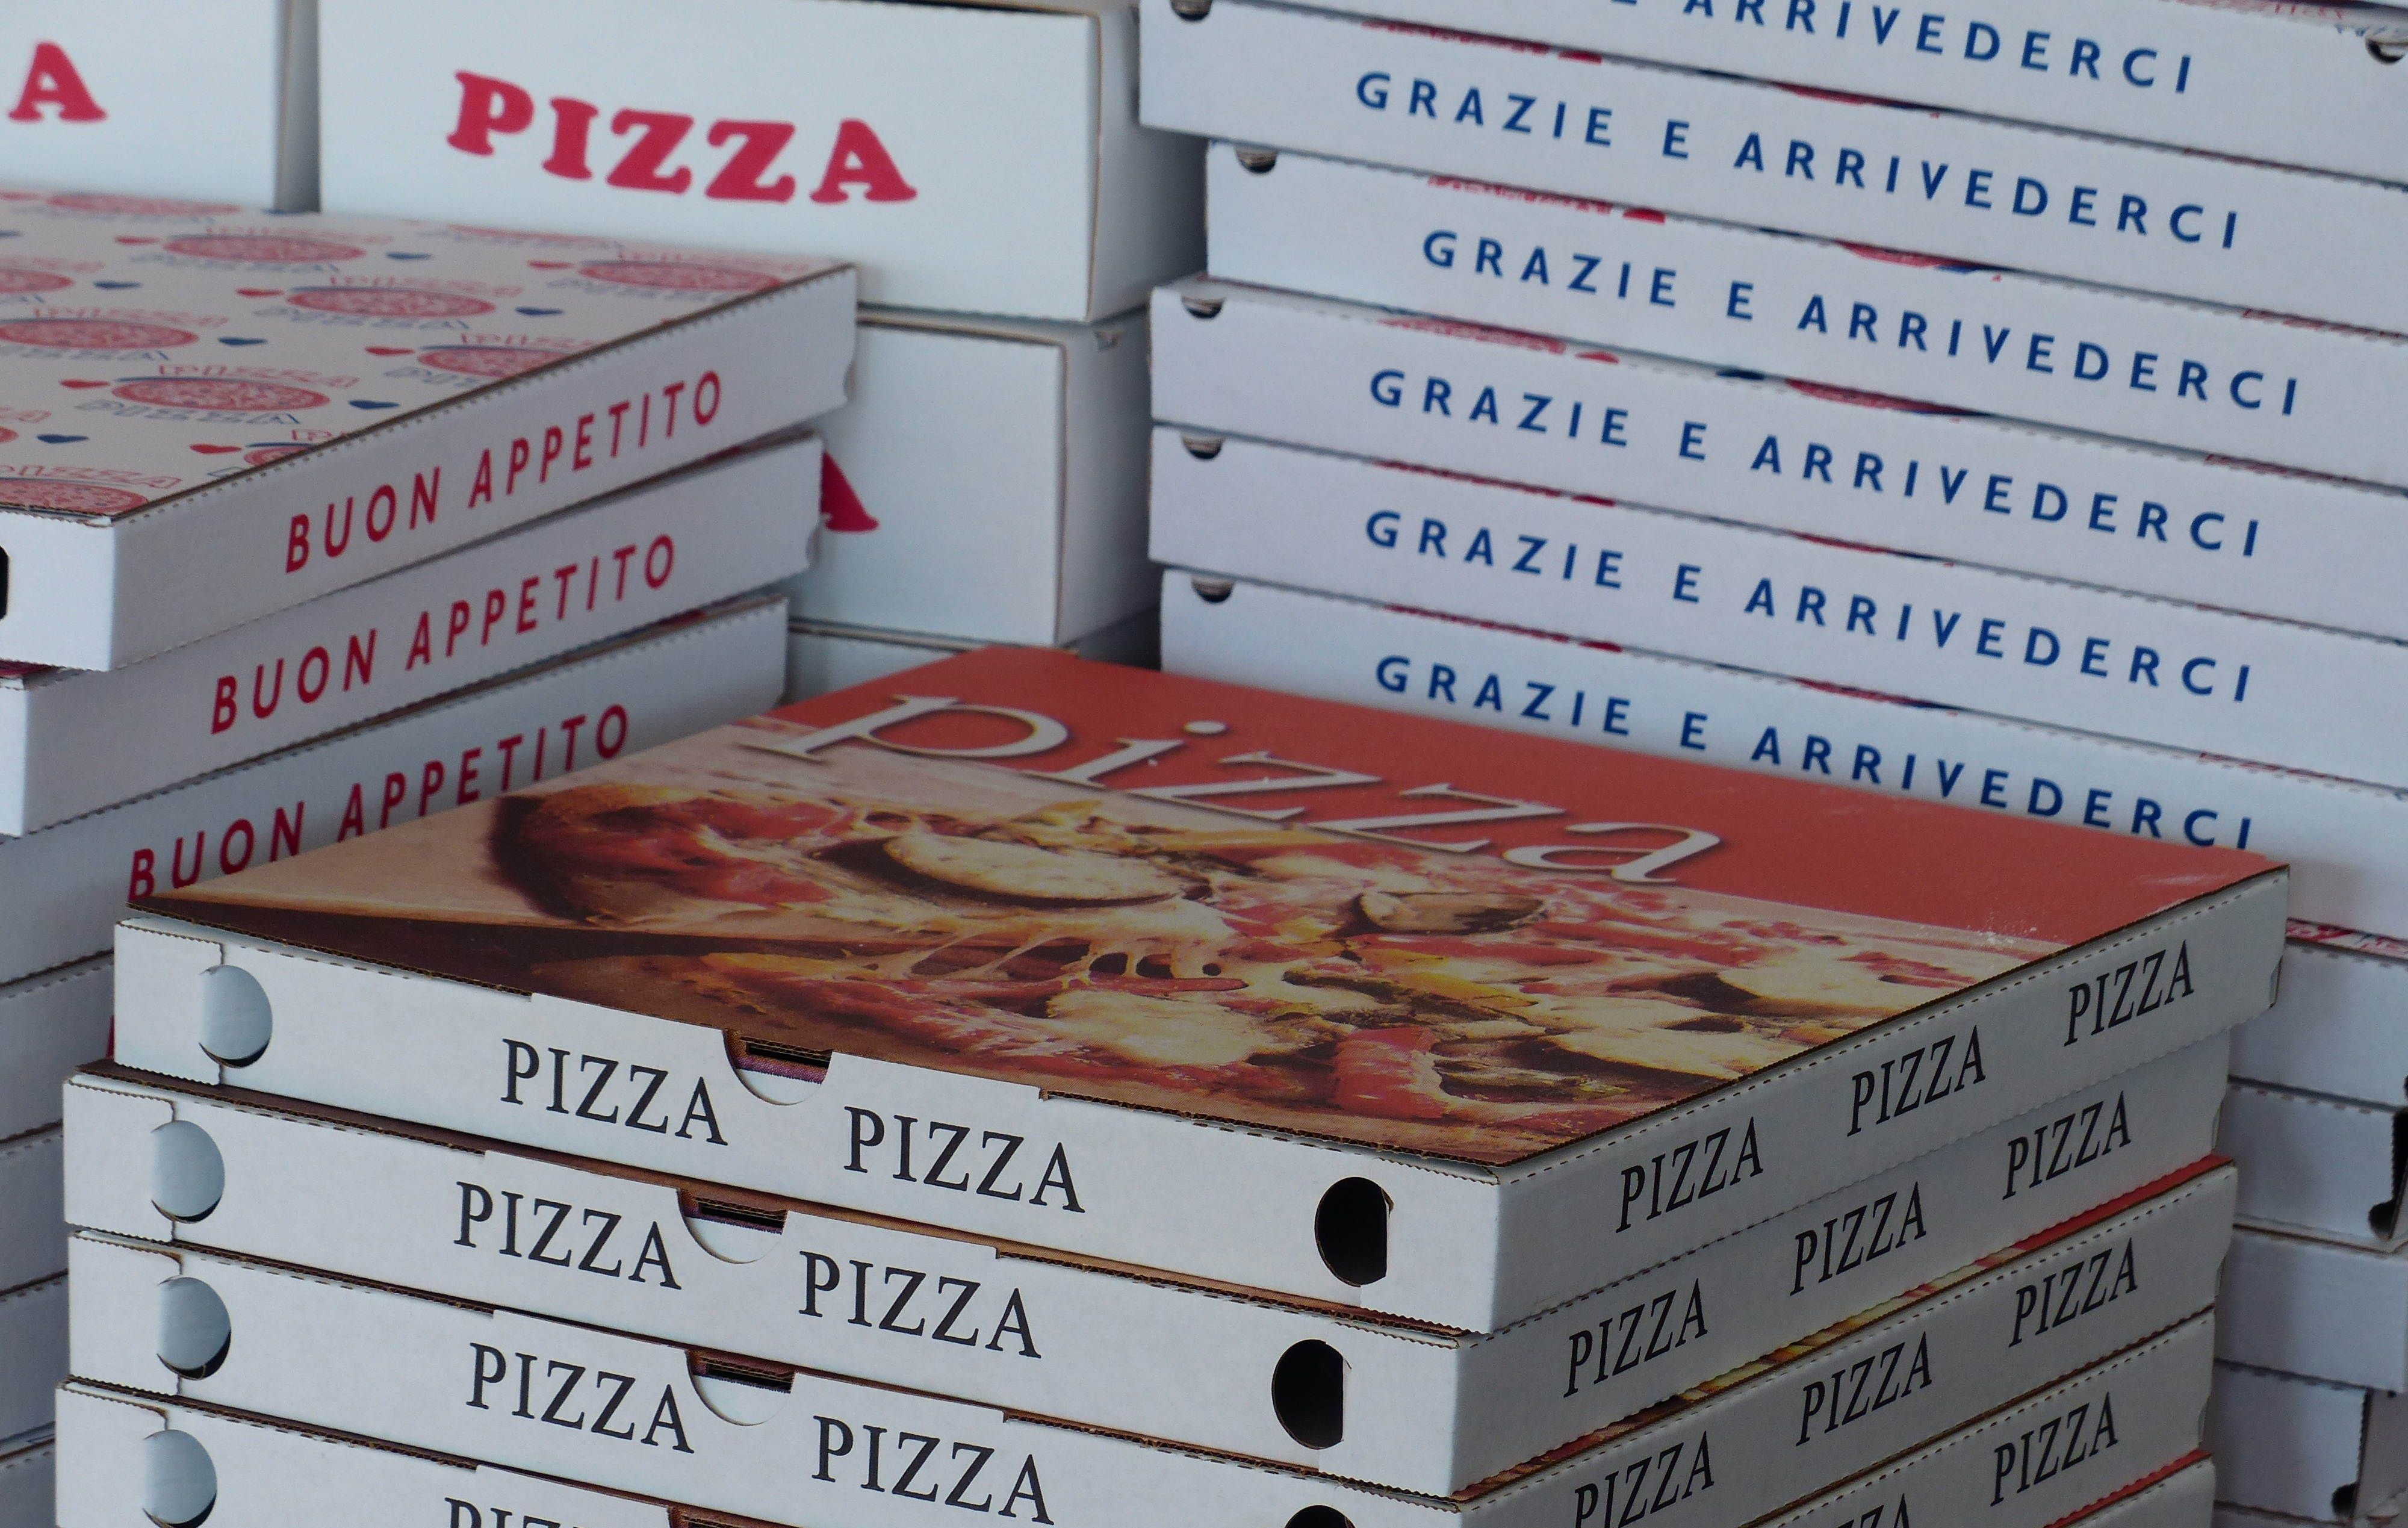 lots-of-pizza-boxes-1497826016.jpg